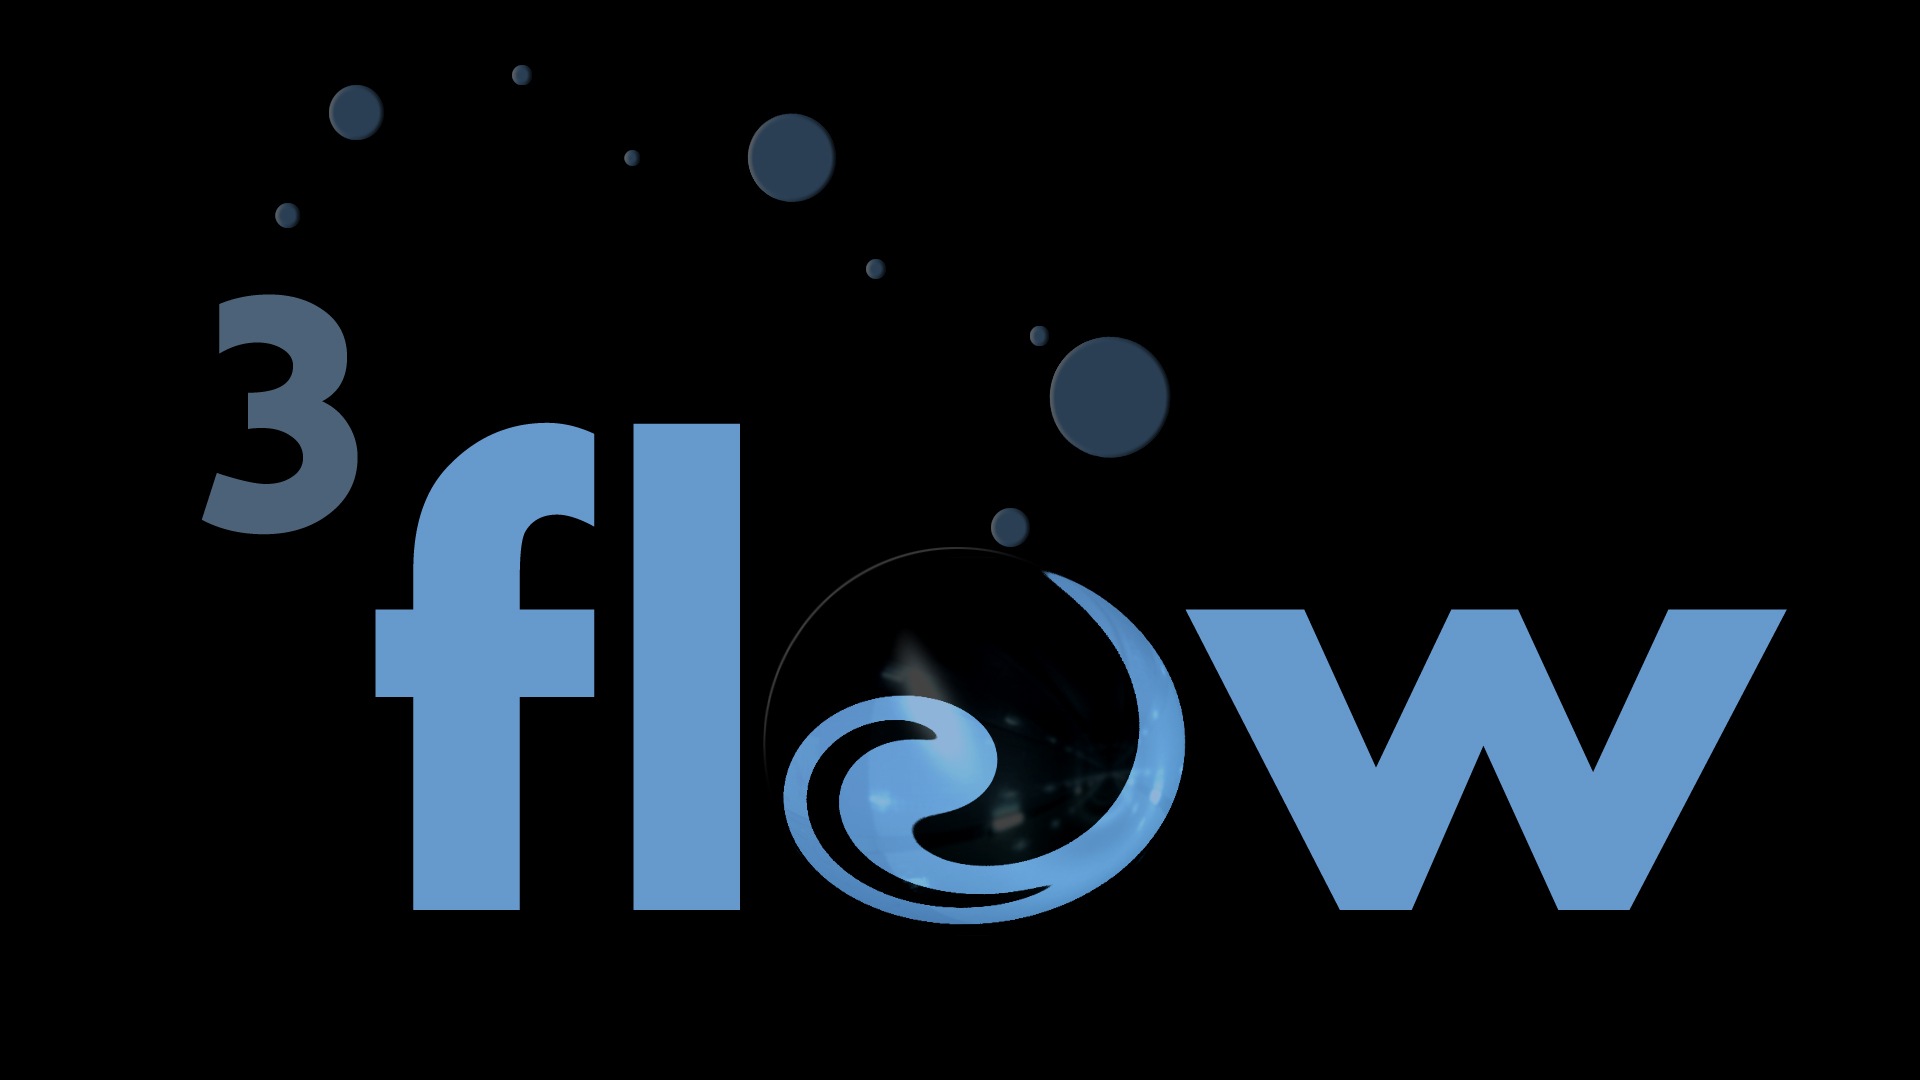 Logo Design by zigzag91 - Entry No. 84 in the Logo Design Contest Fun Logo Design for 3flow.